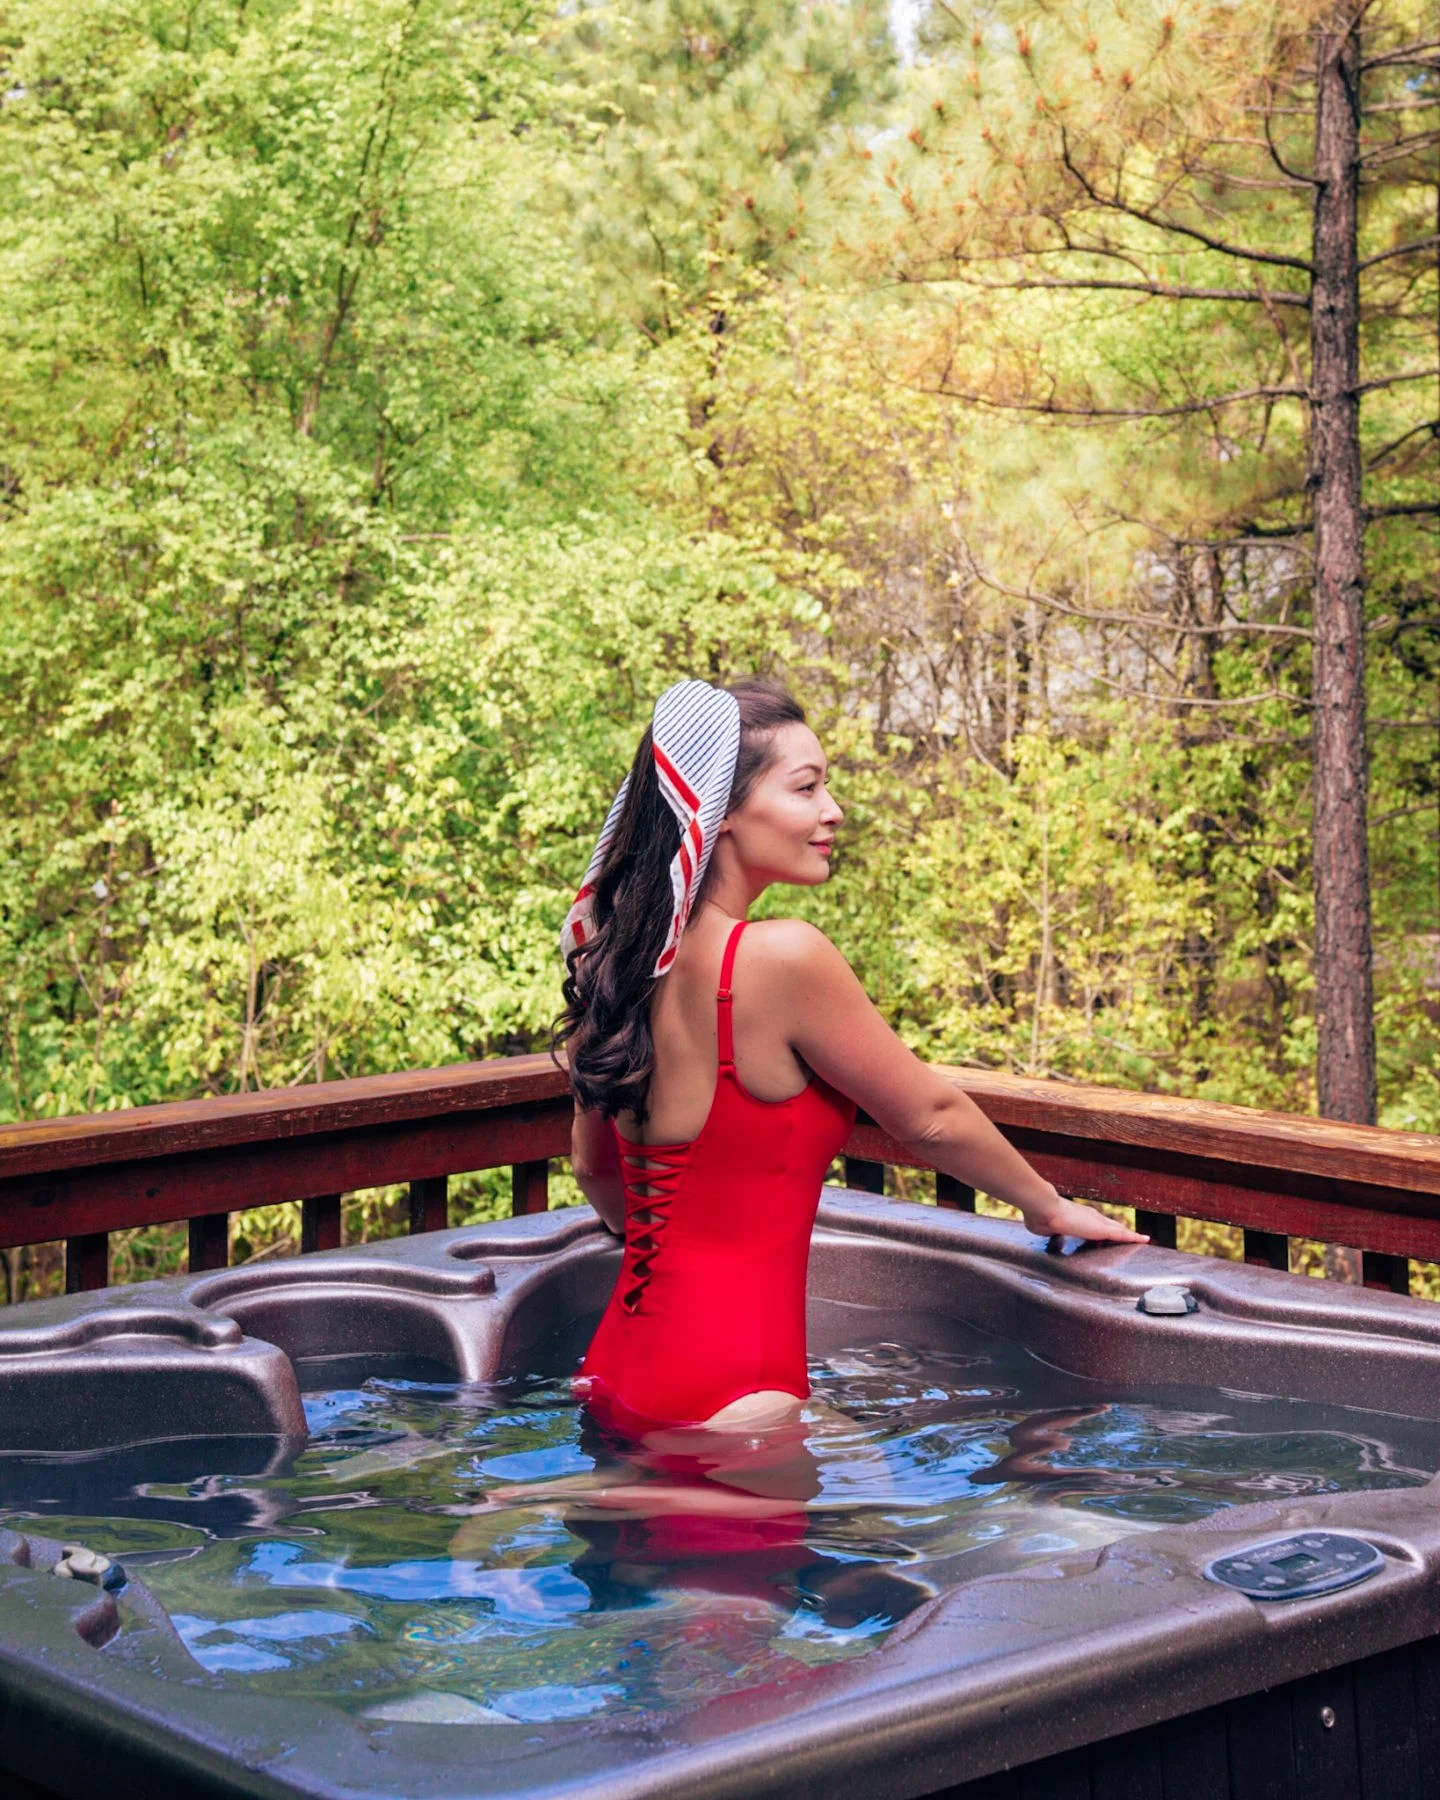 girl in hot tub in forest